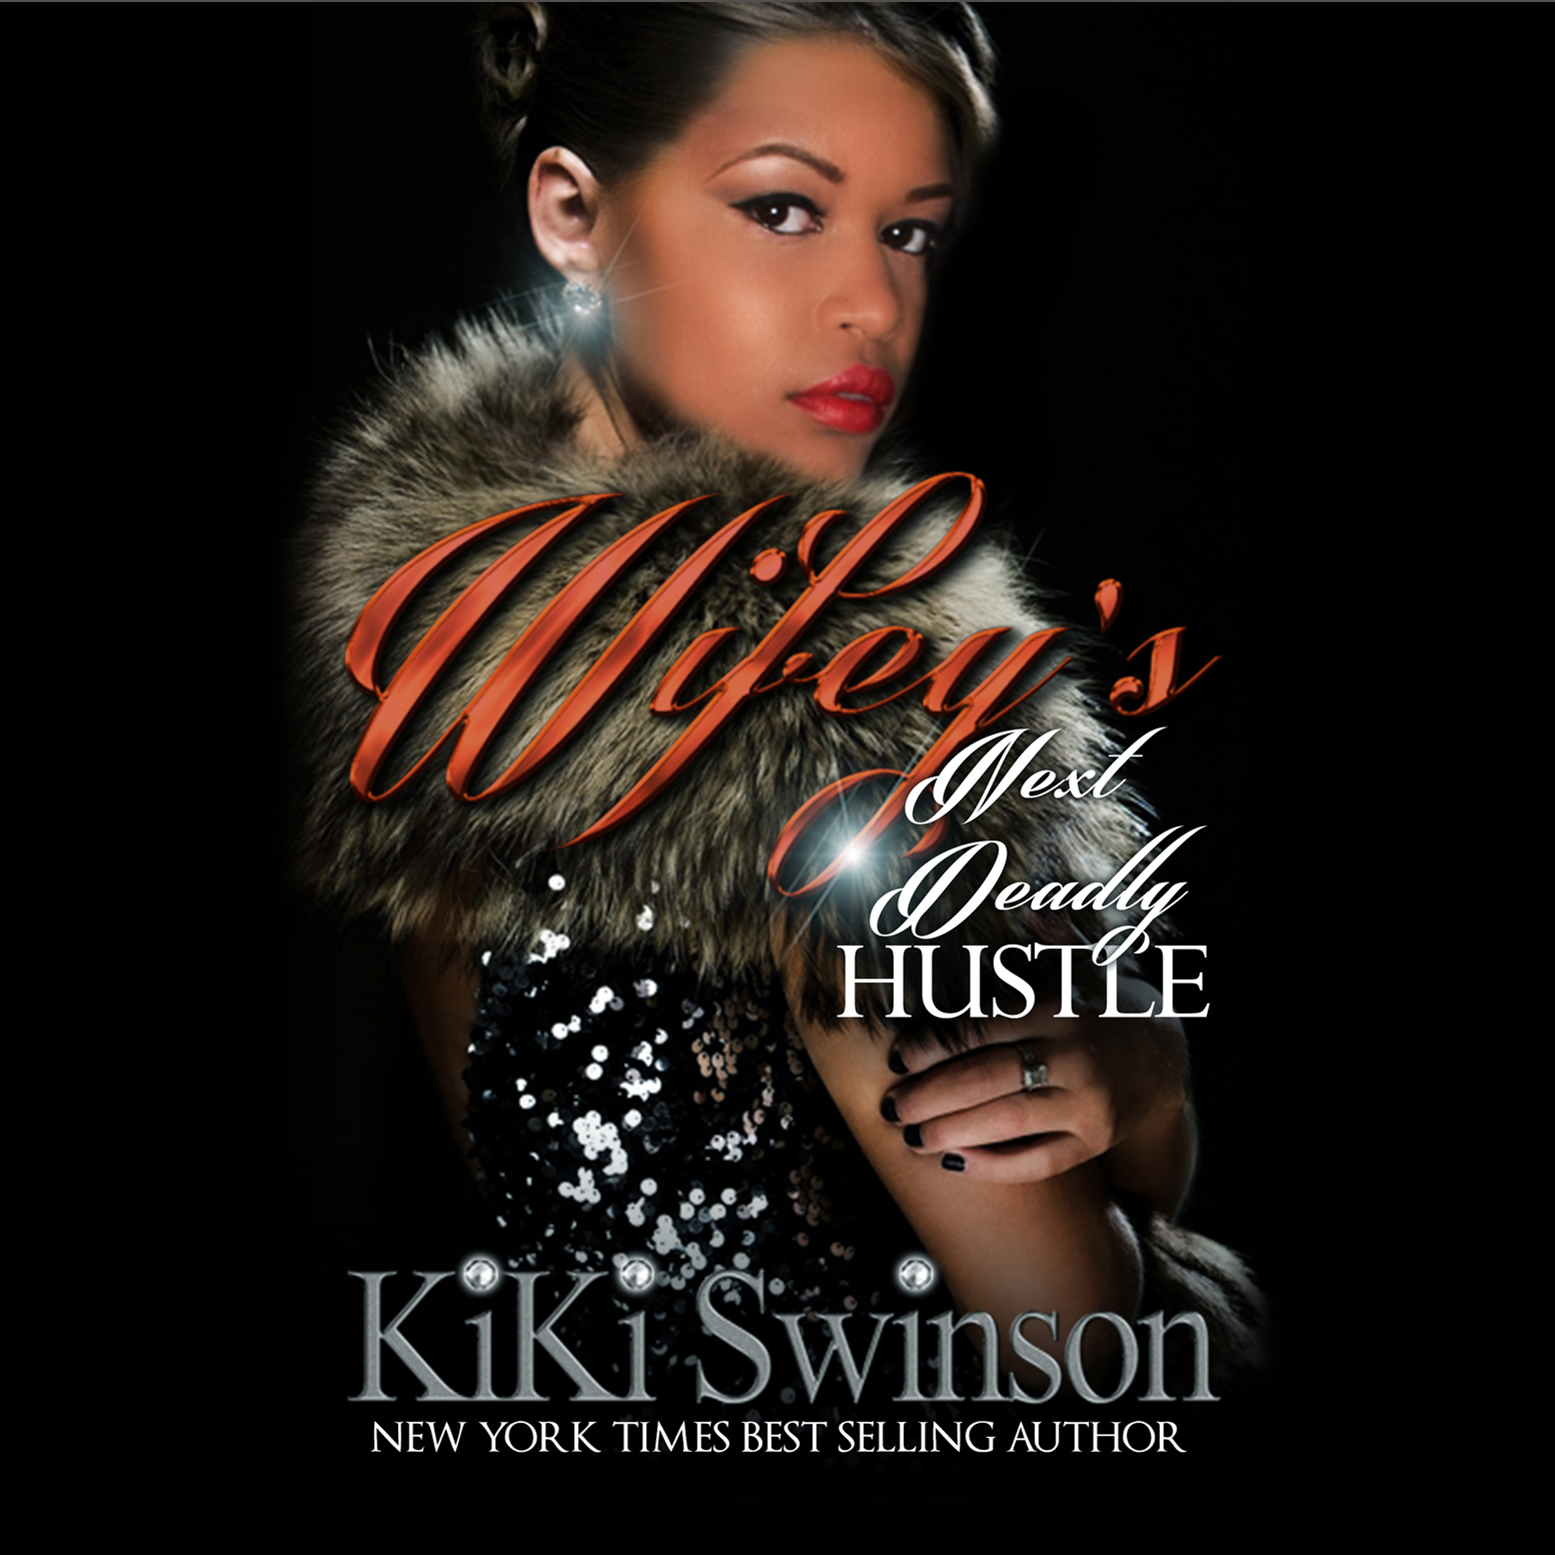 Printable Wifey's Next Deadly Hustle Audiobook Cover Art